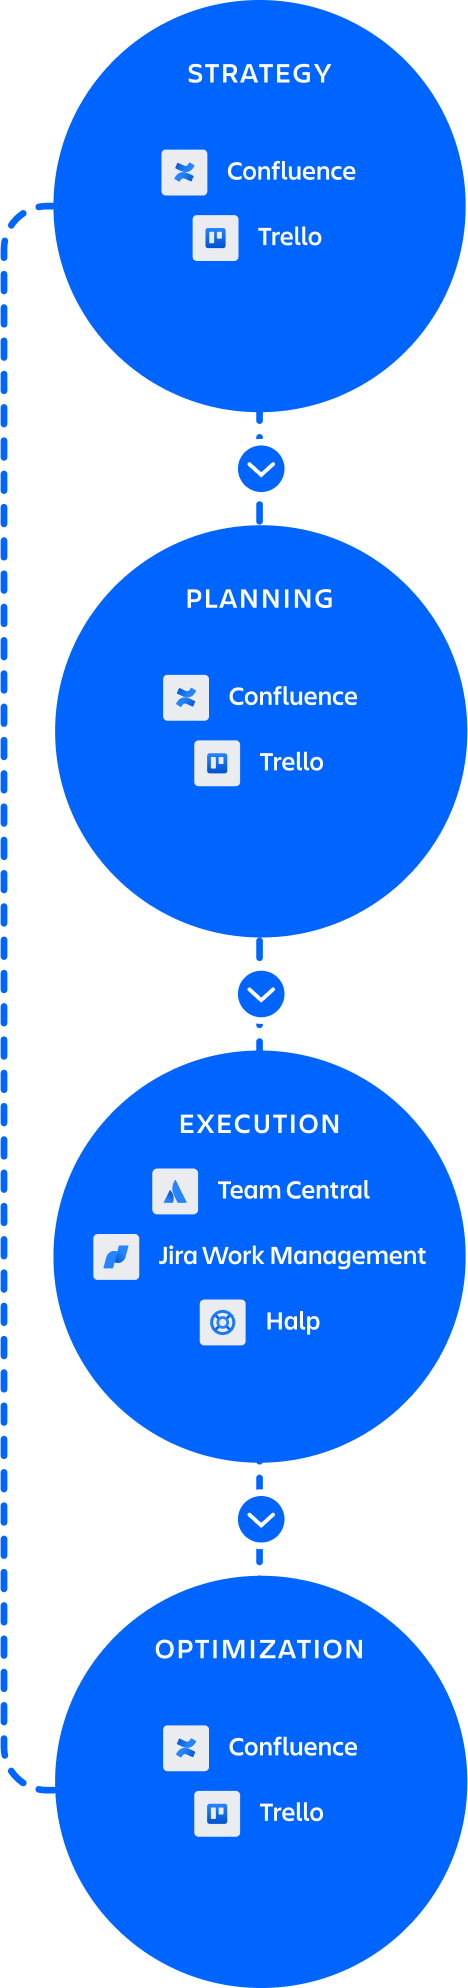 Talent acquisition circle with Confluence and Jira Work Management